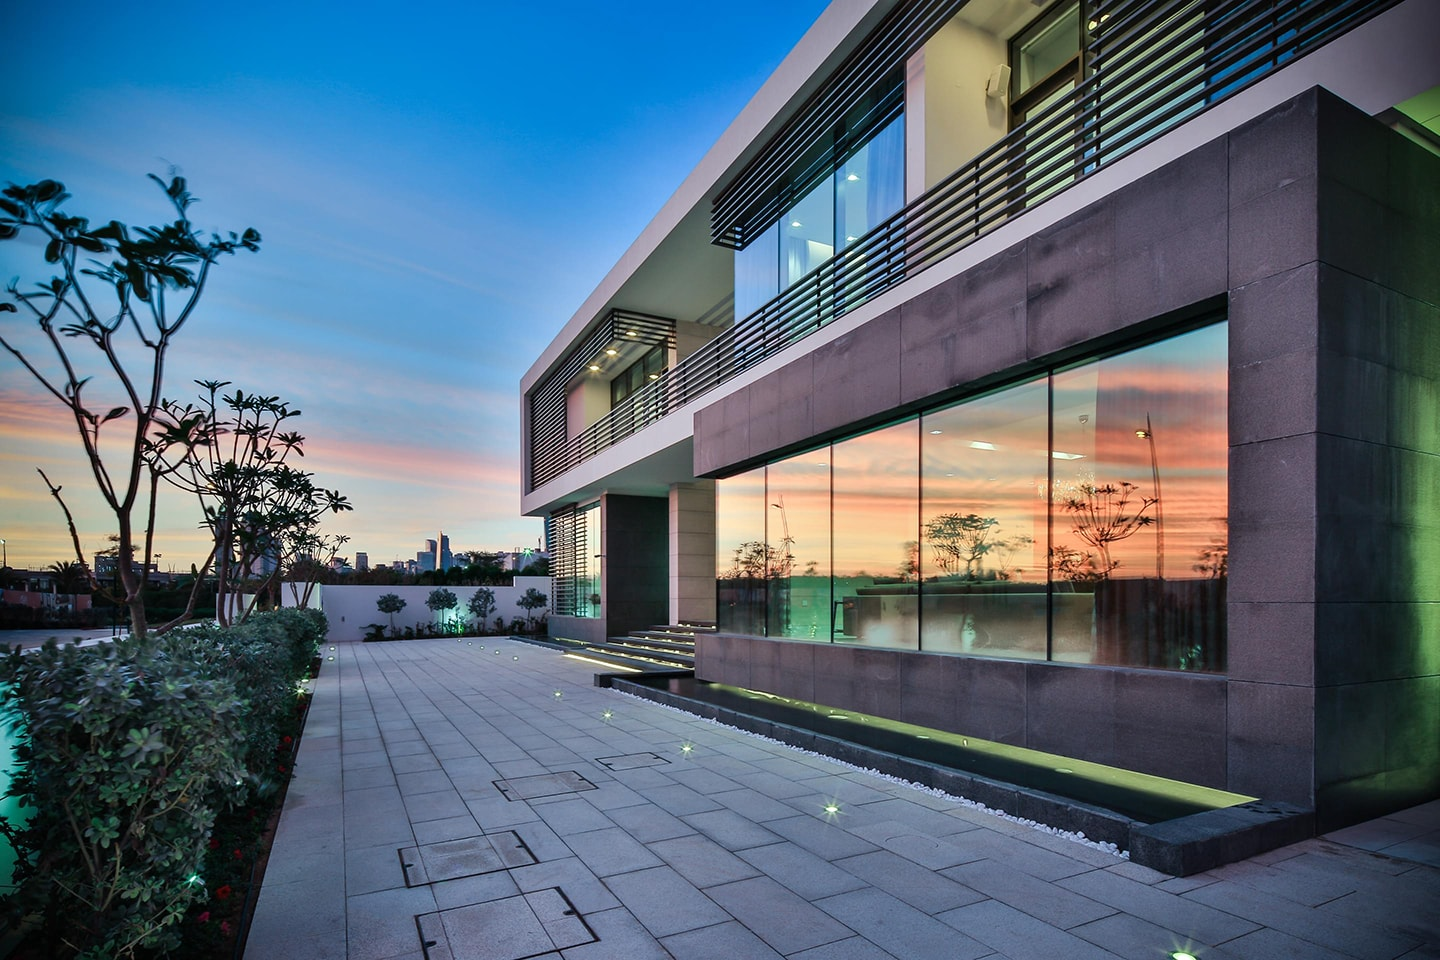 District One Residential Development by Quezada Architecture (Fred Quezada, Cecilia Quezada, Ed Tingley)